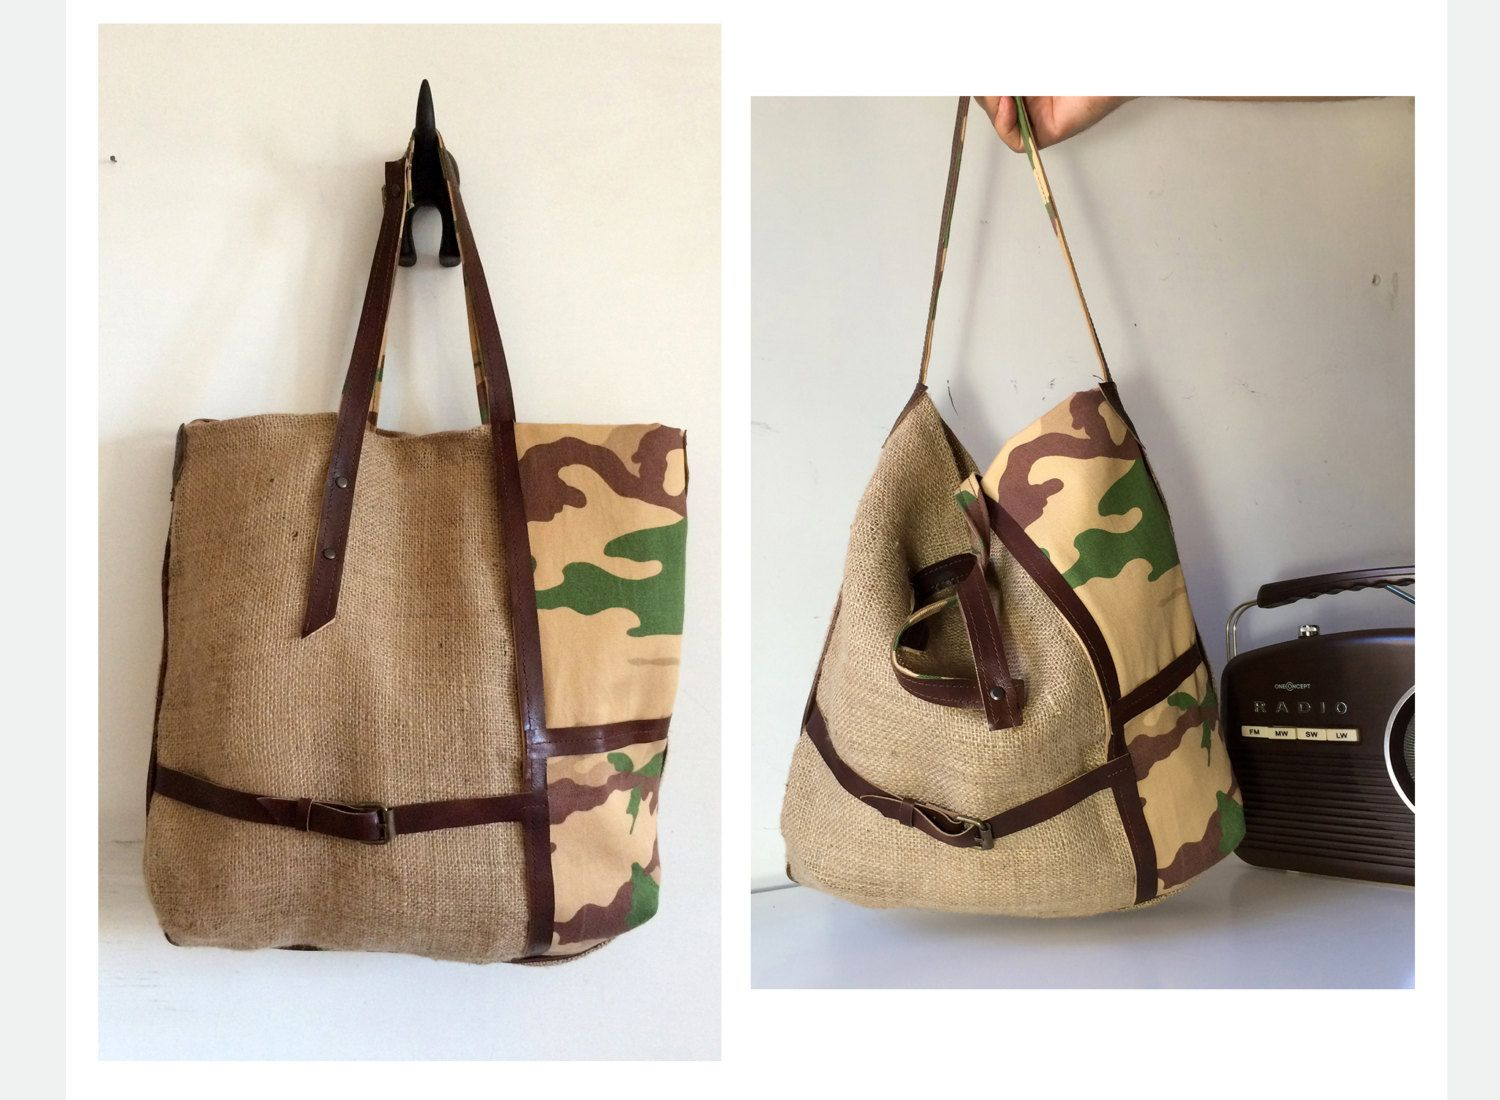 Borse Donna Stoffa.Leather Jute Tote Bag Gift For Her Womens Bag With Original Design Military Bag With Fabric Cotton And Leather Shoulde Jute Tote Bags Jute Totes Military Bag